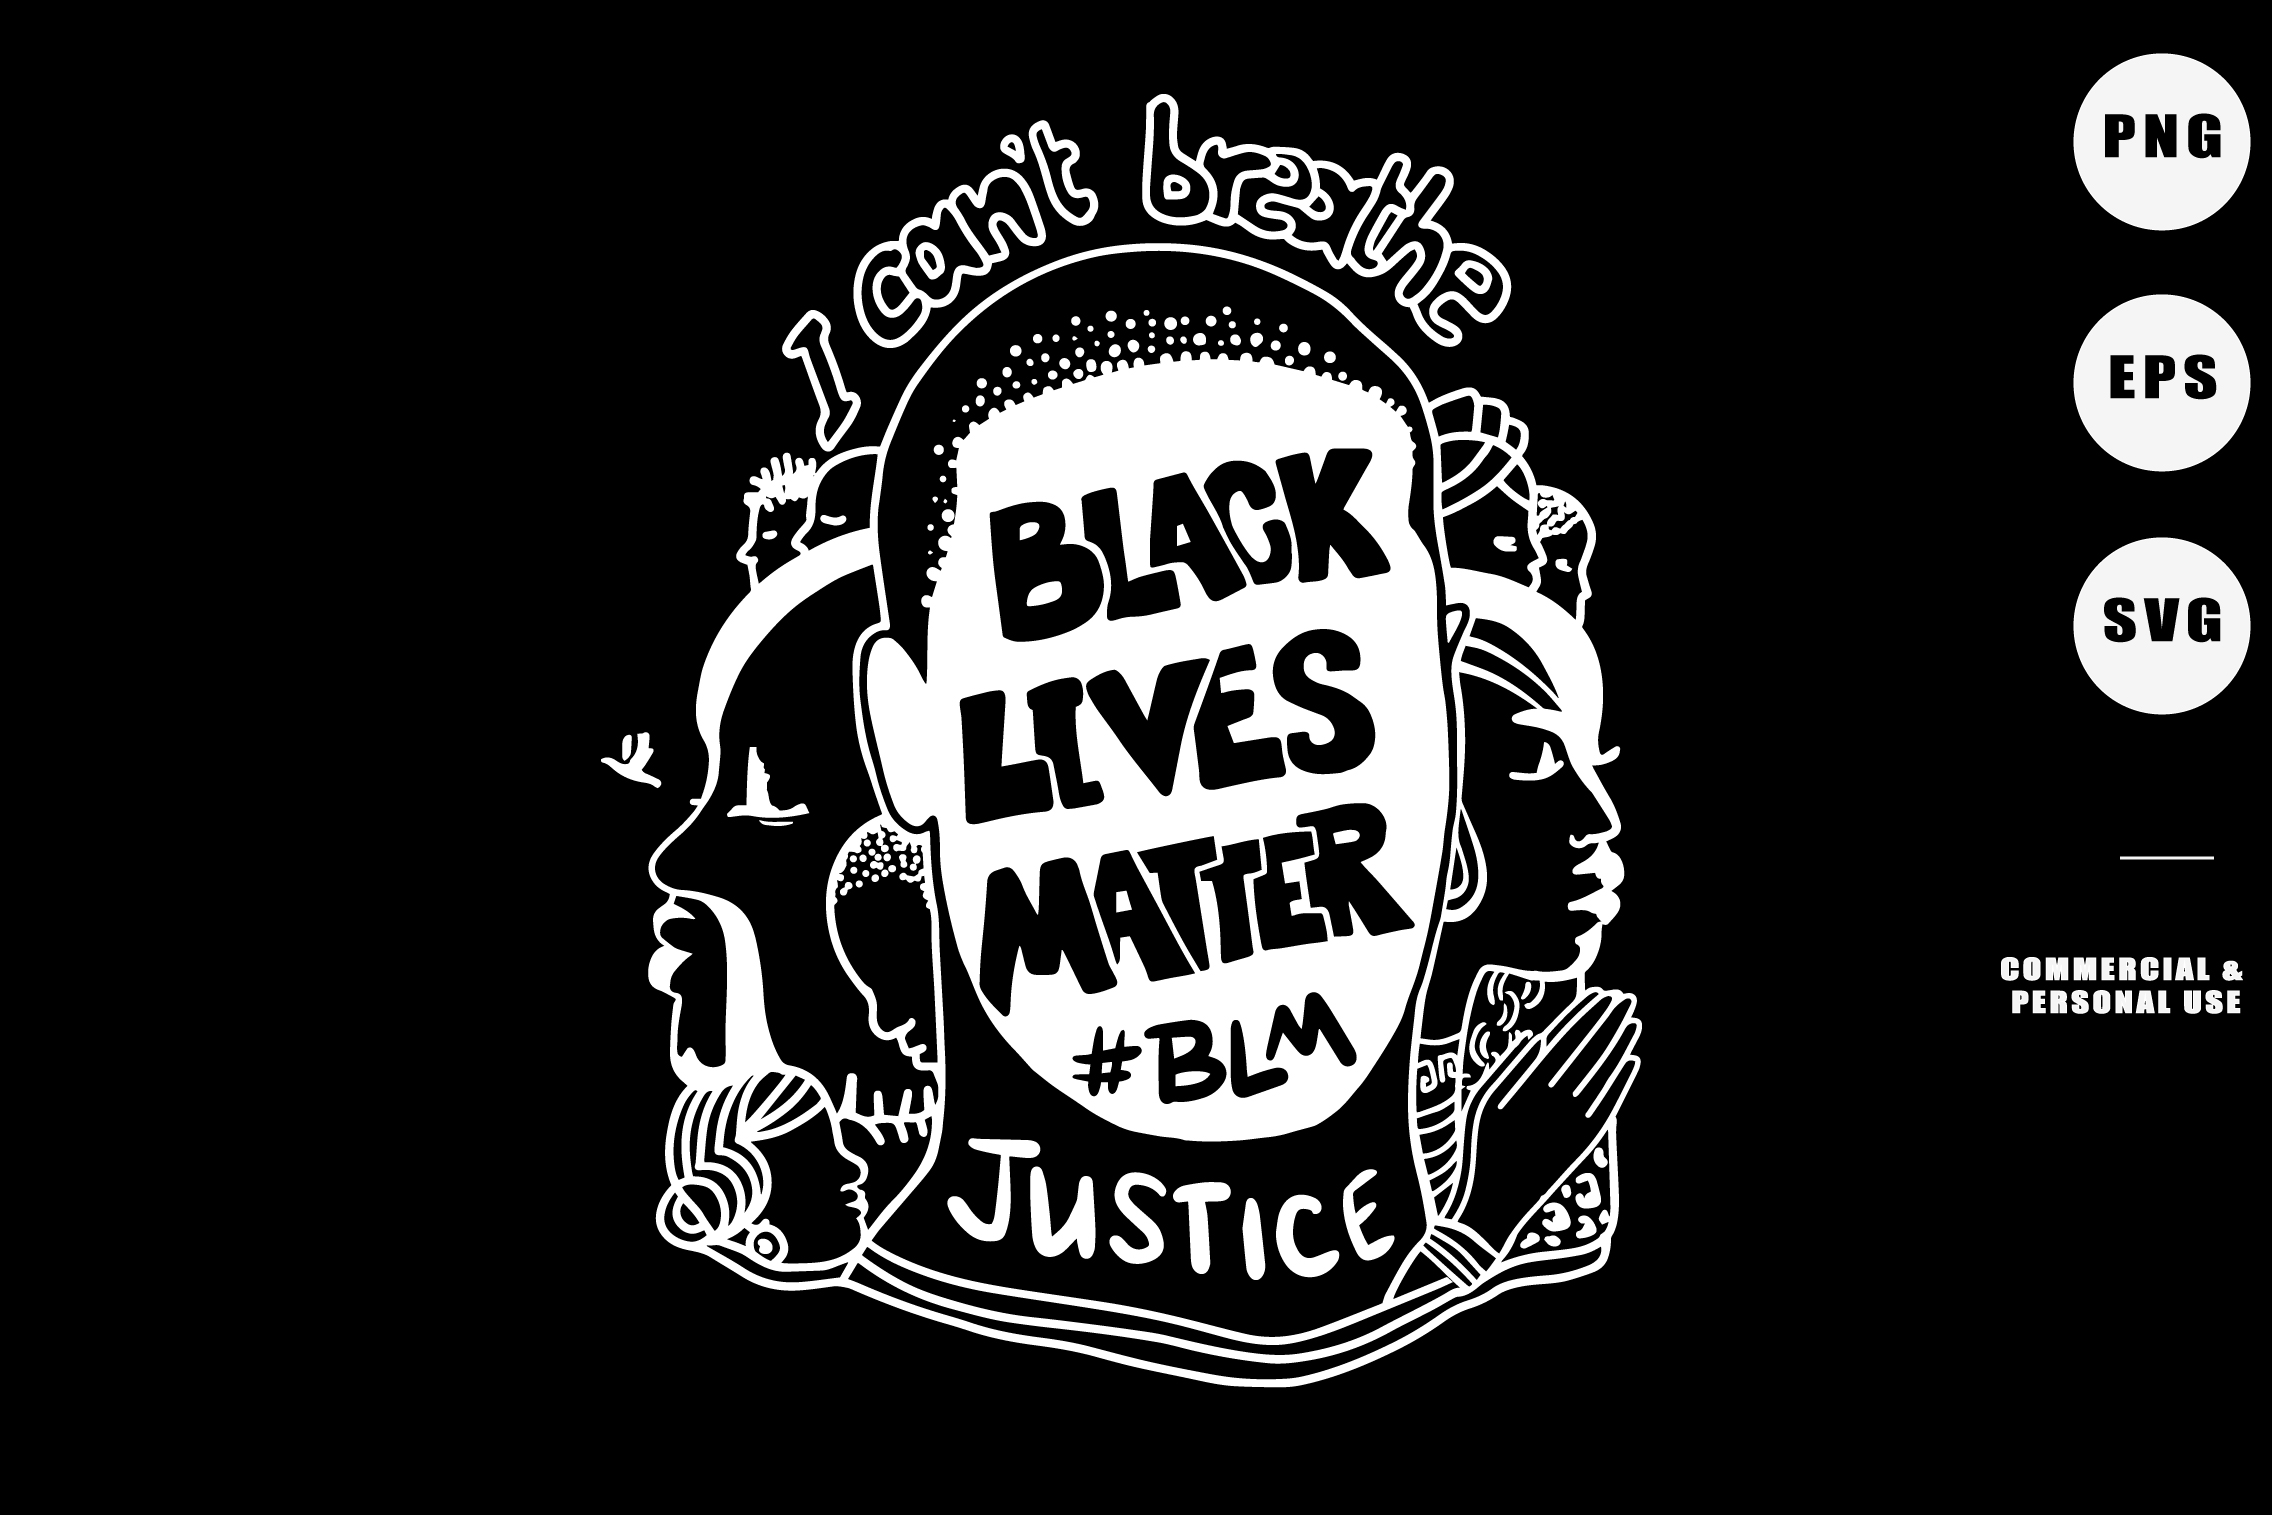 Download Free Black Lives Matter Blm Graphic By Adlydigital Creative Fabrica for Cricut Explore, Silhouette and other cutting machines.